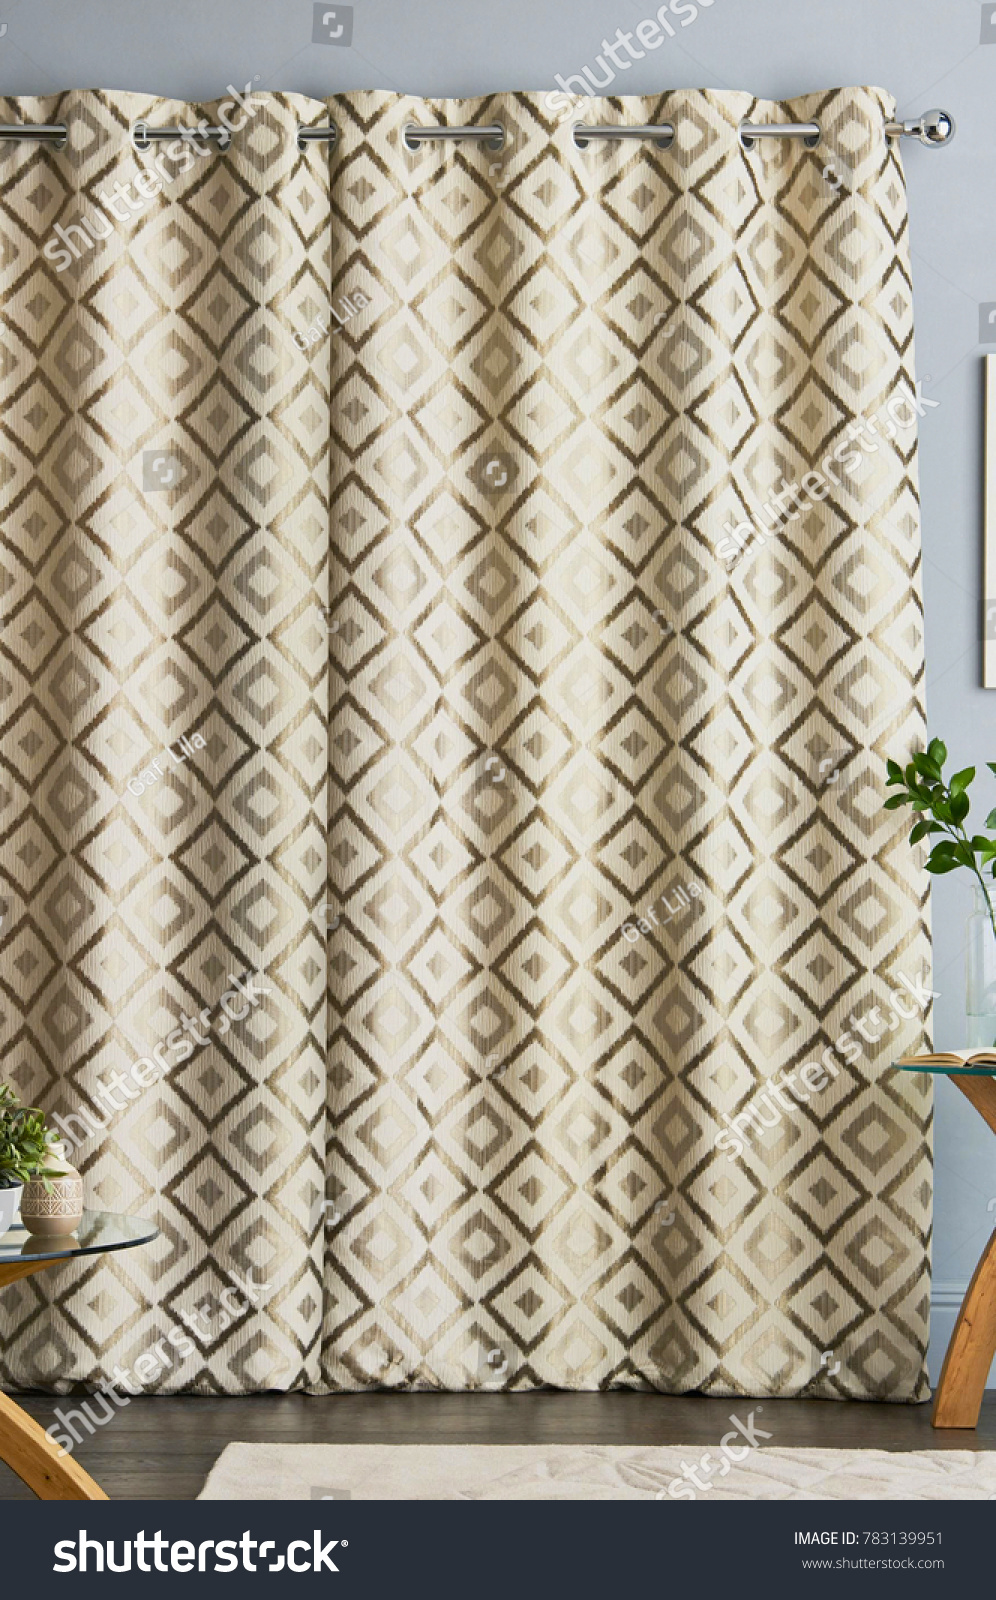 Stylish Home Living Room Curtains Stock Photo (Royalty Free ...